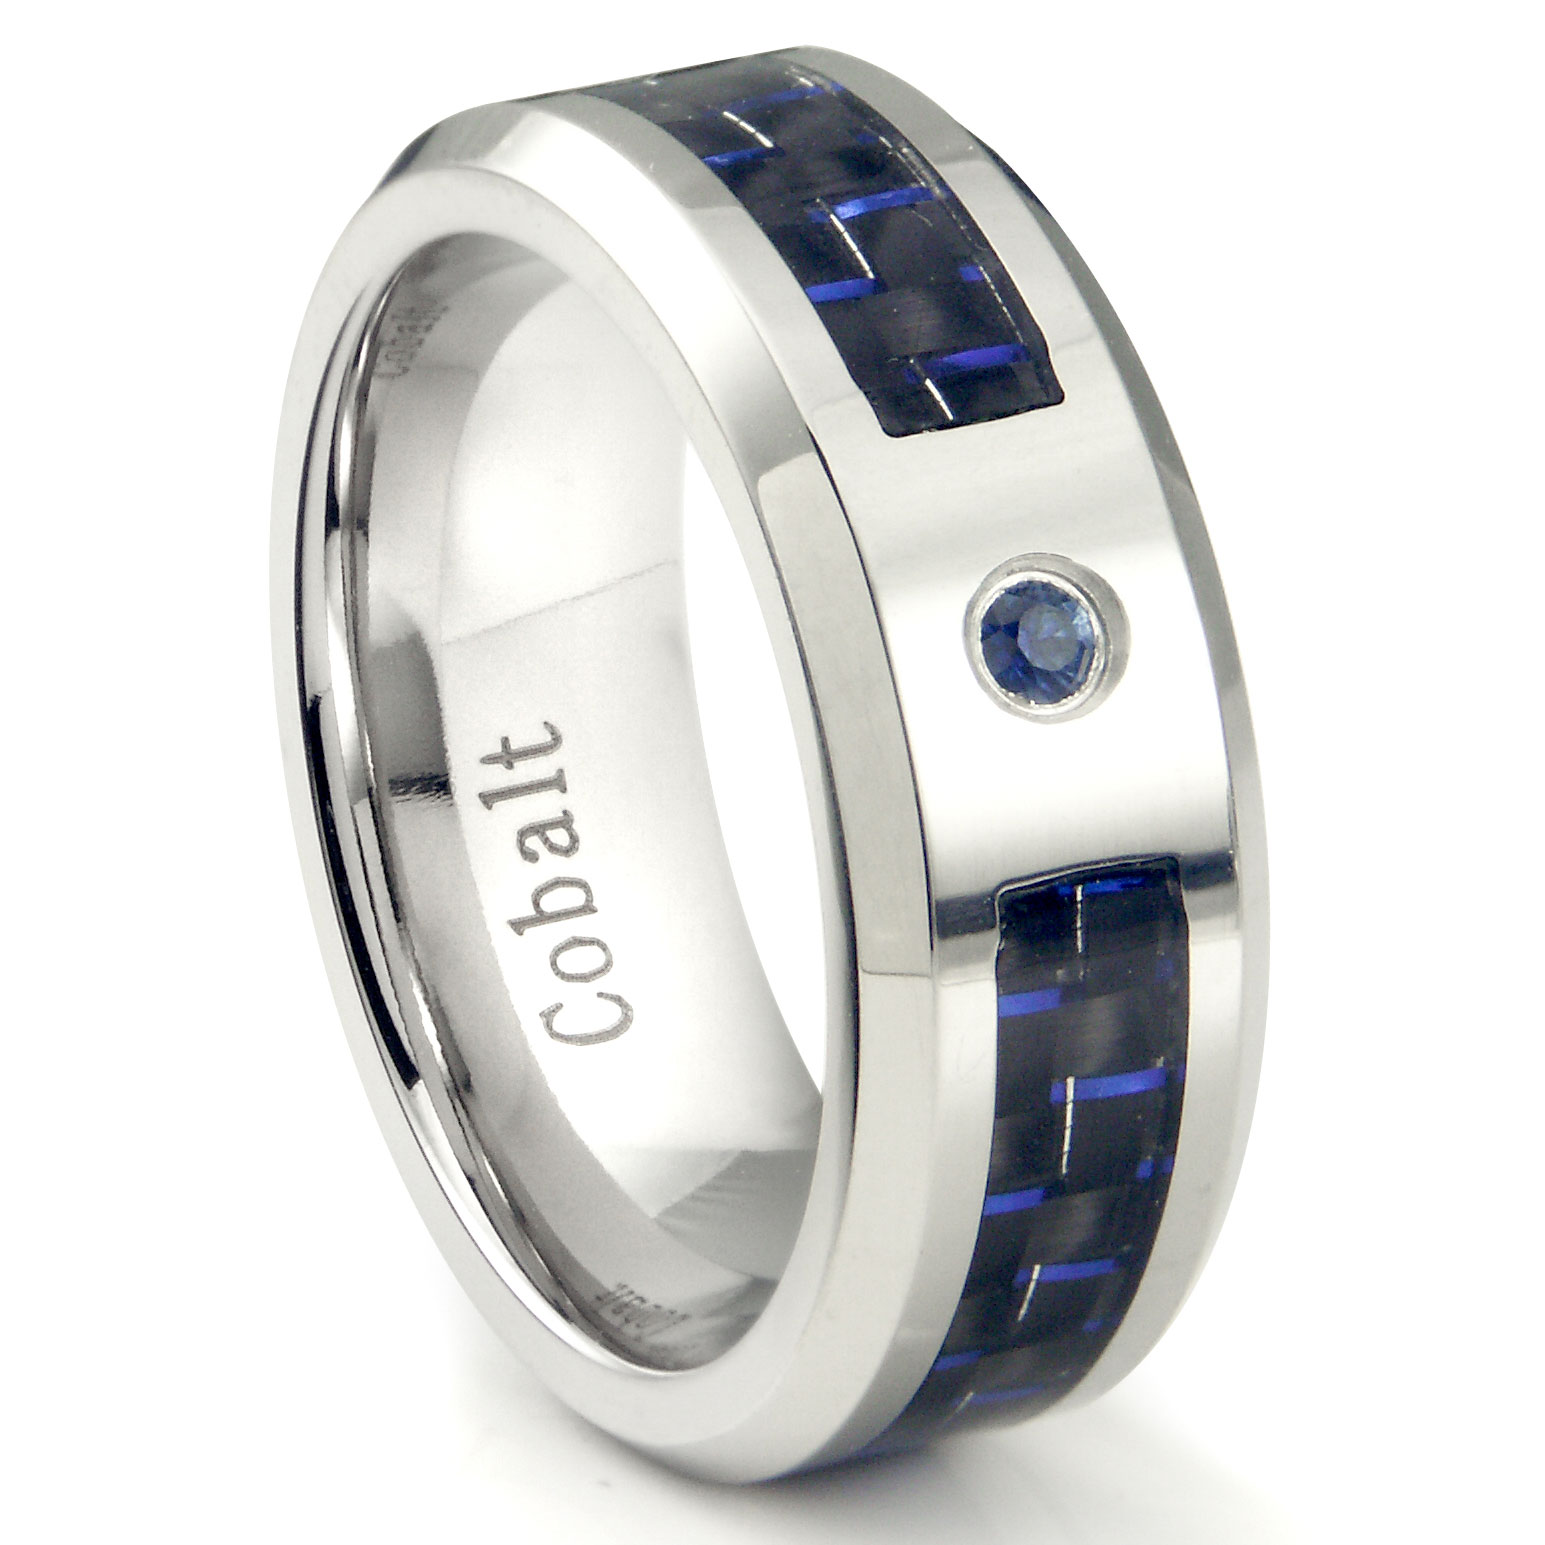 rings s black tungsten band male wedding com bands fit walmart men ip ring comfort mens